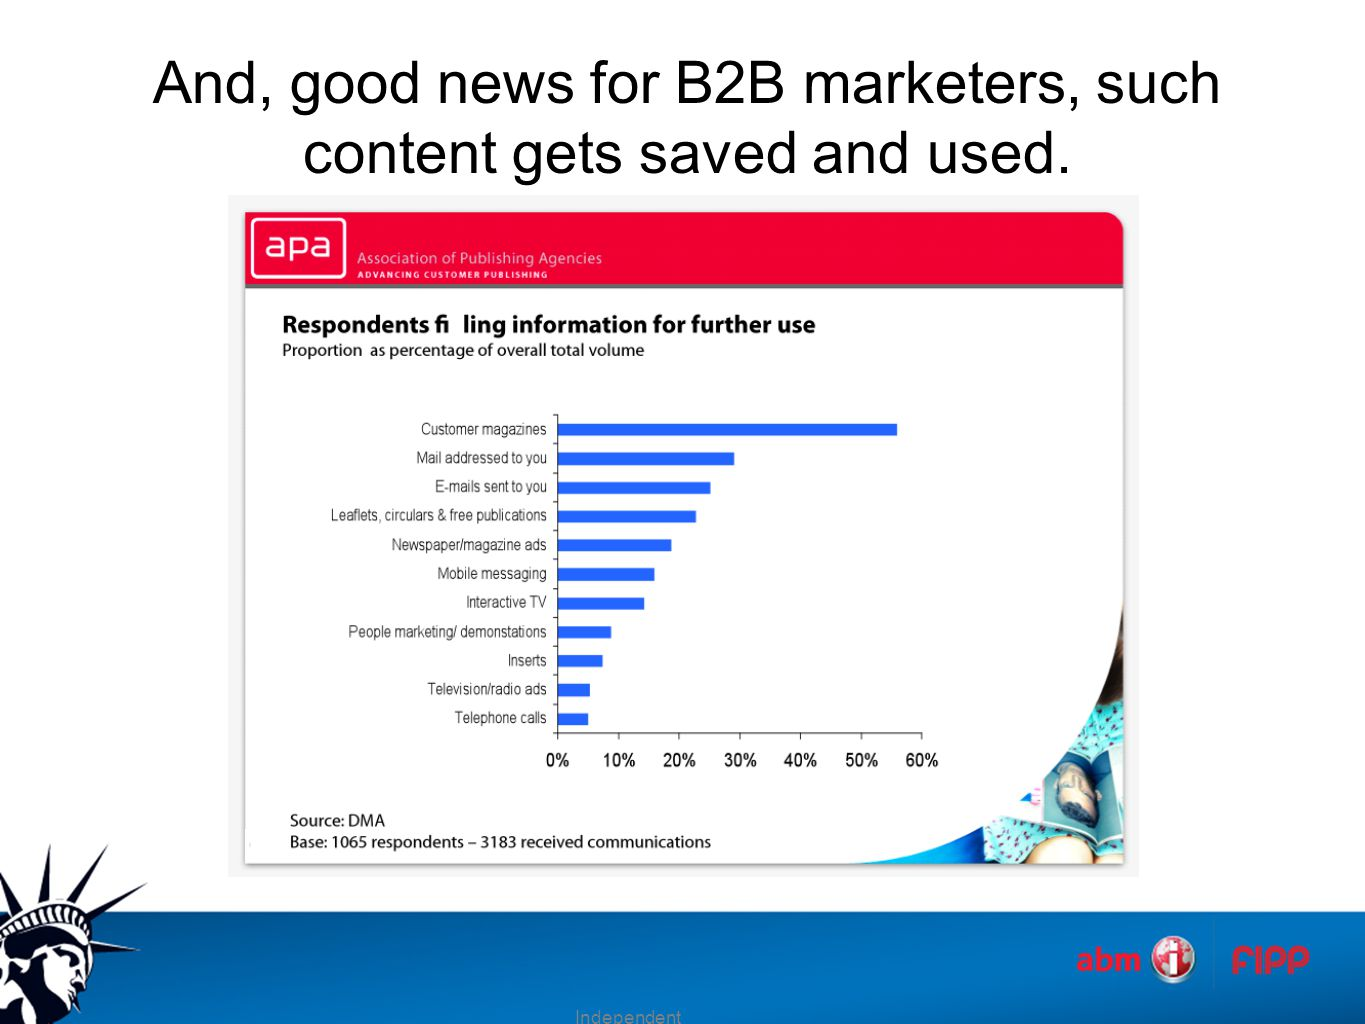 And, good news for B2B marketers, such content gets saved and used. Independent